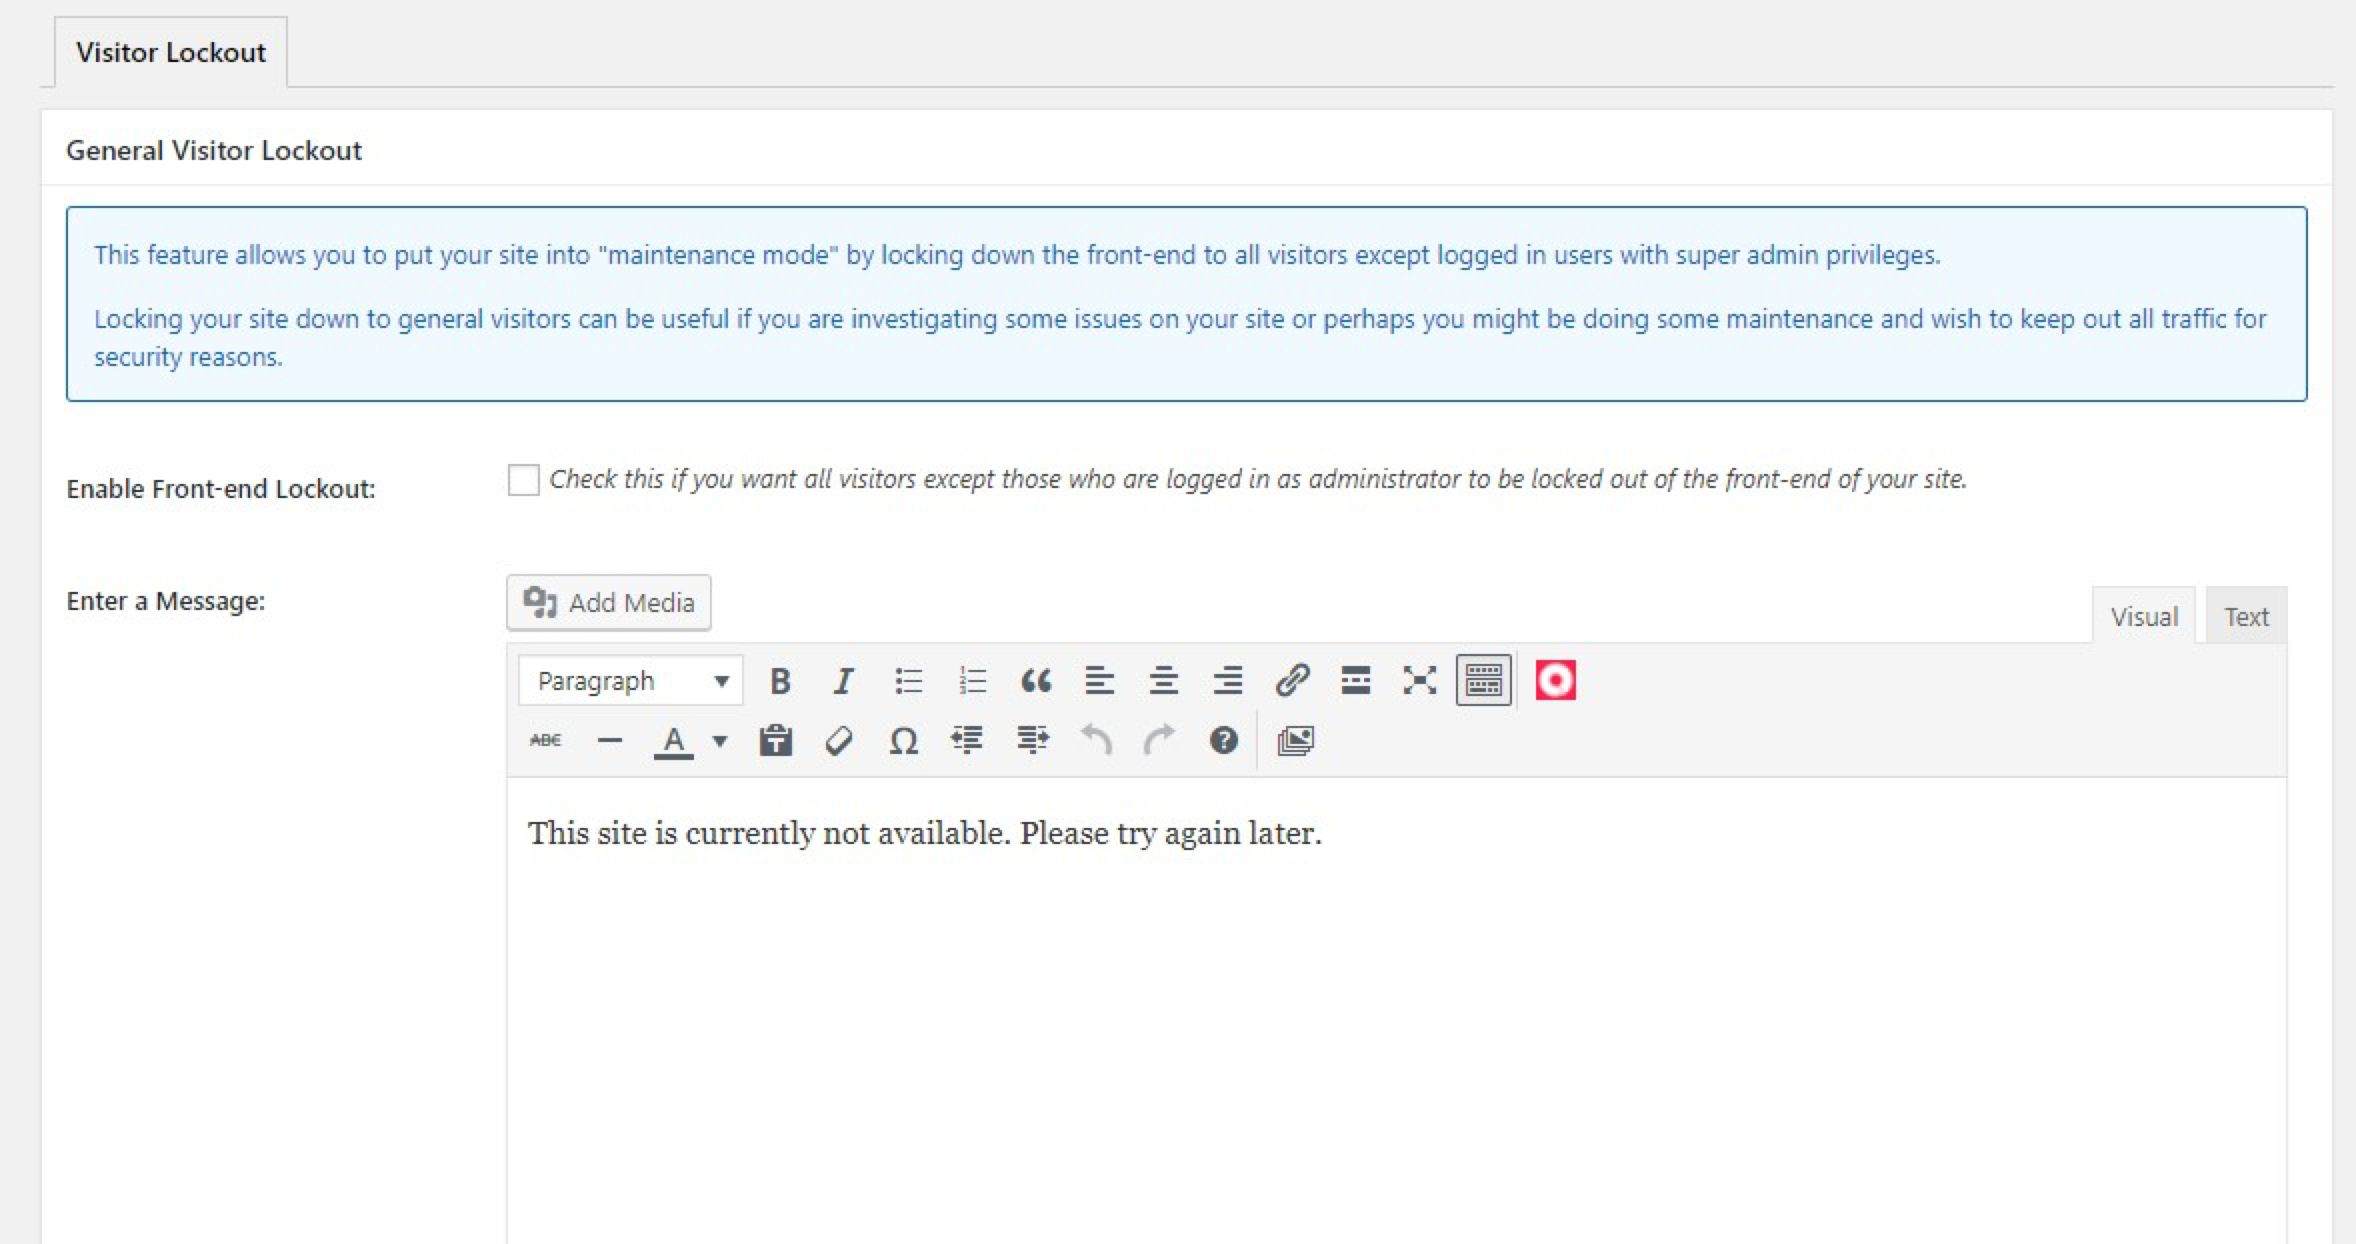 Maintenance message